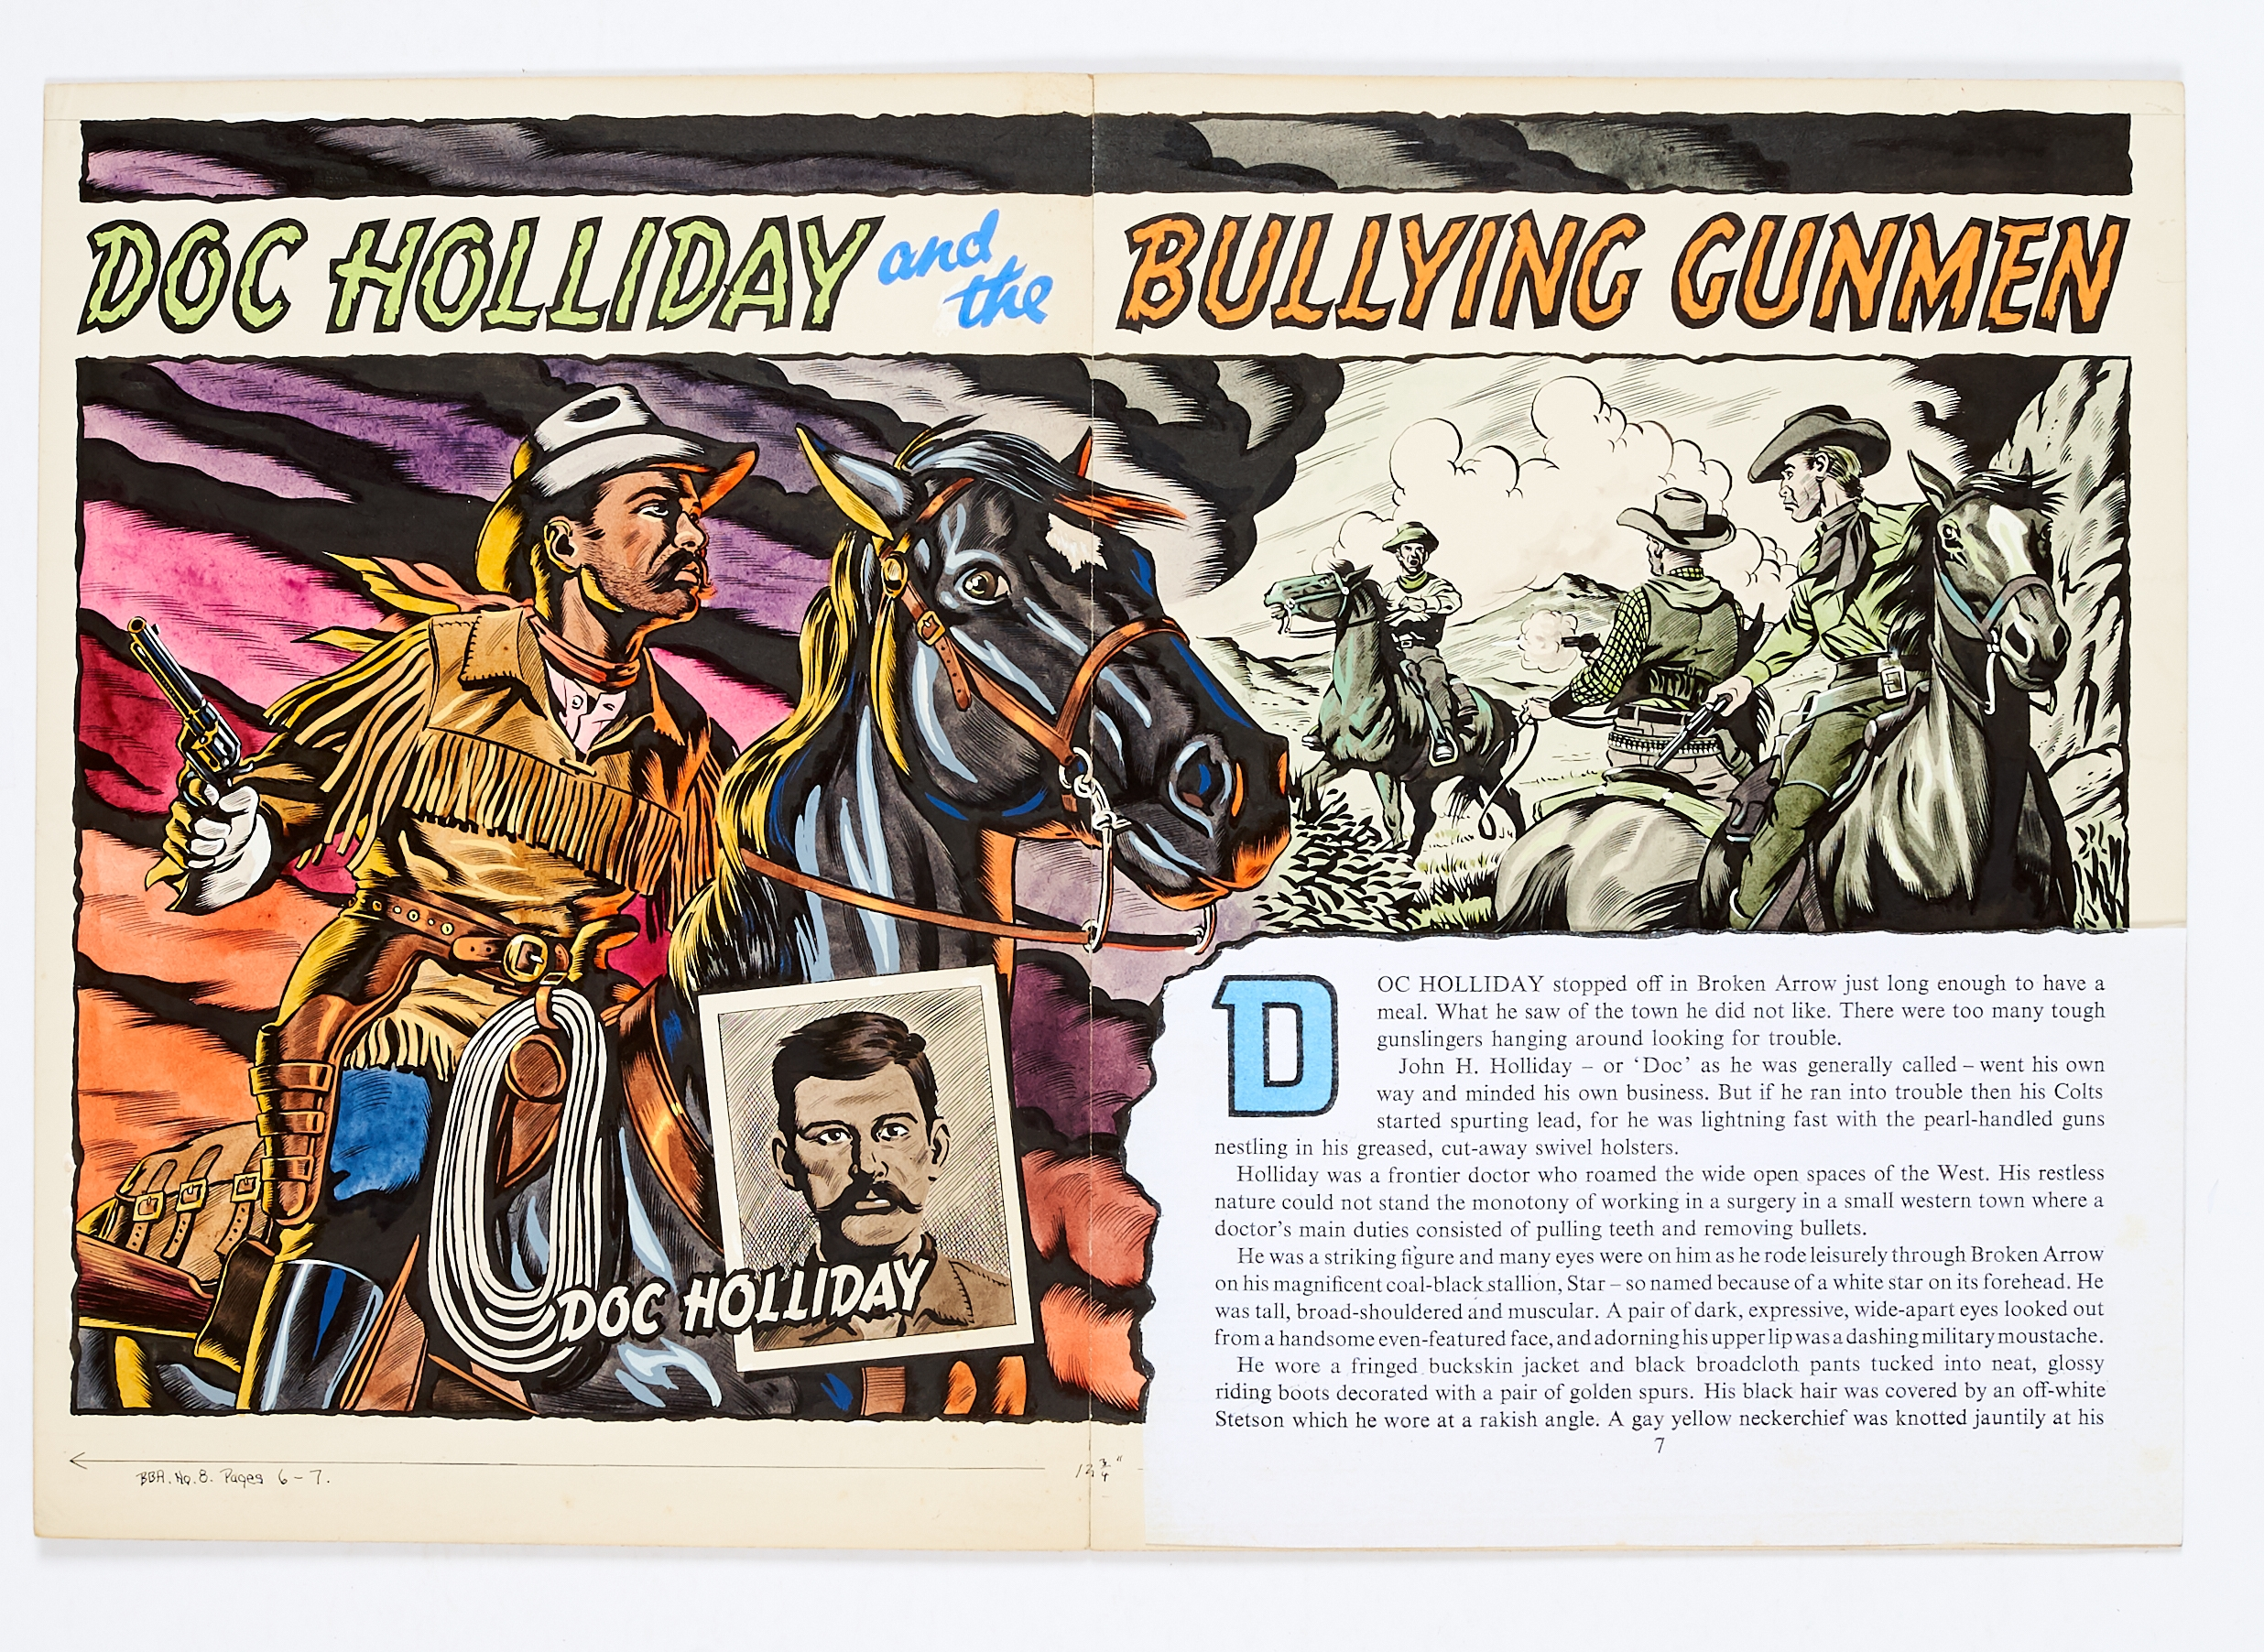 Lot 43 - Doc Holliday and the Bullying Gunmen original artwork (1956) drawn and painted by Denis McLoughlin